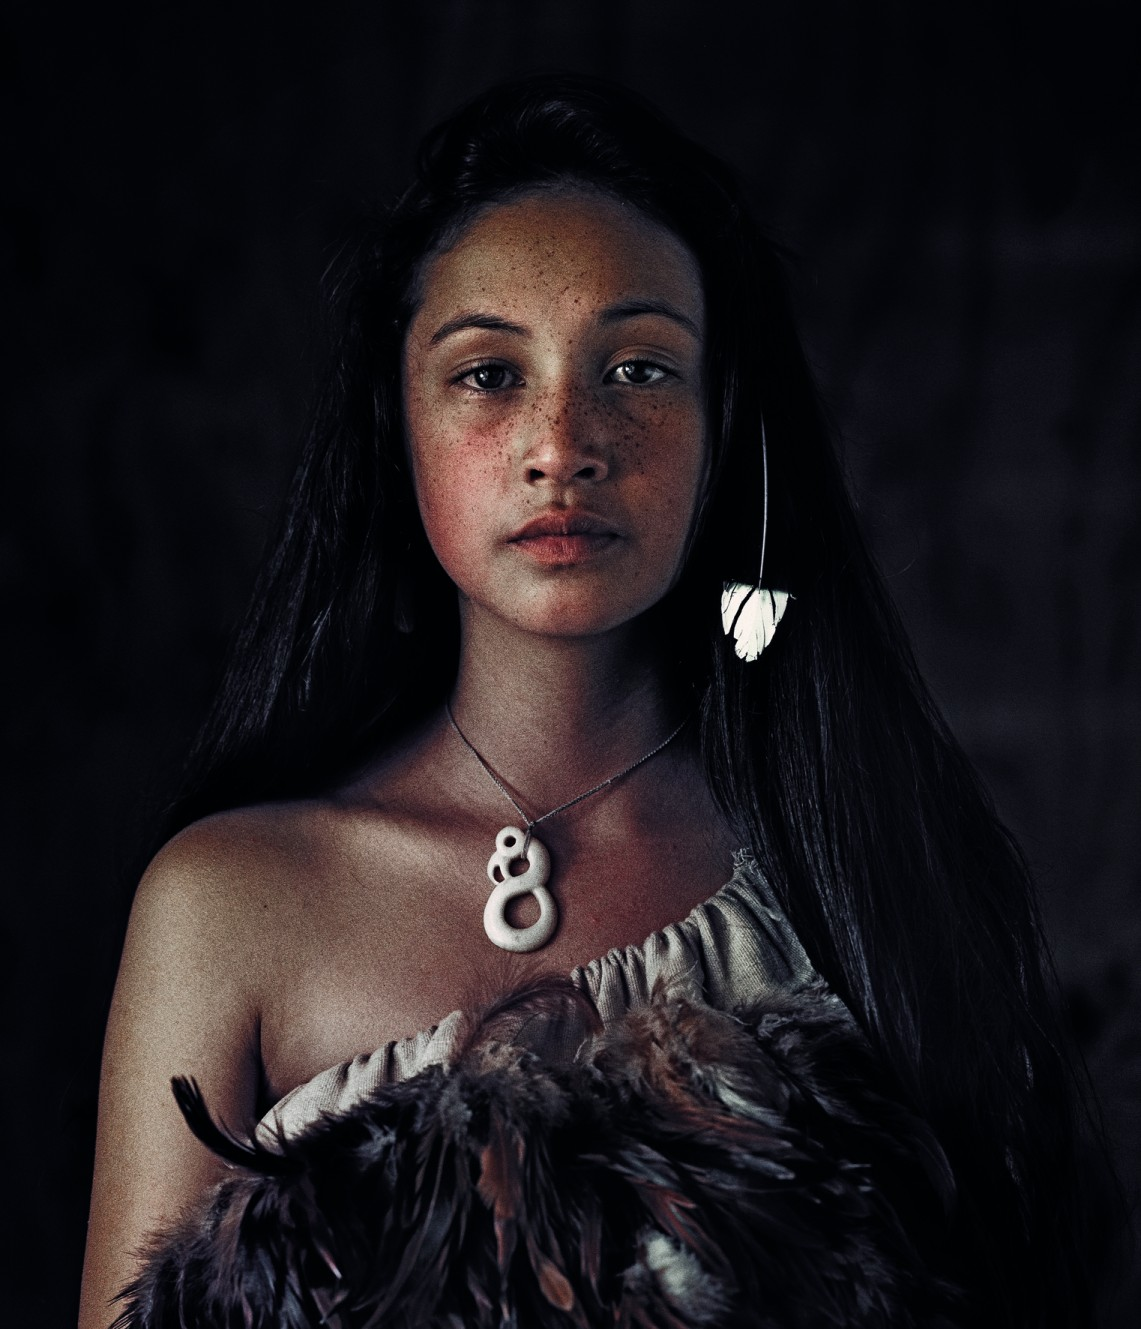 Stunning Photographs Of The World's Last Indigenous Tribes - TAUPO VILLAGE